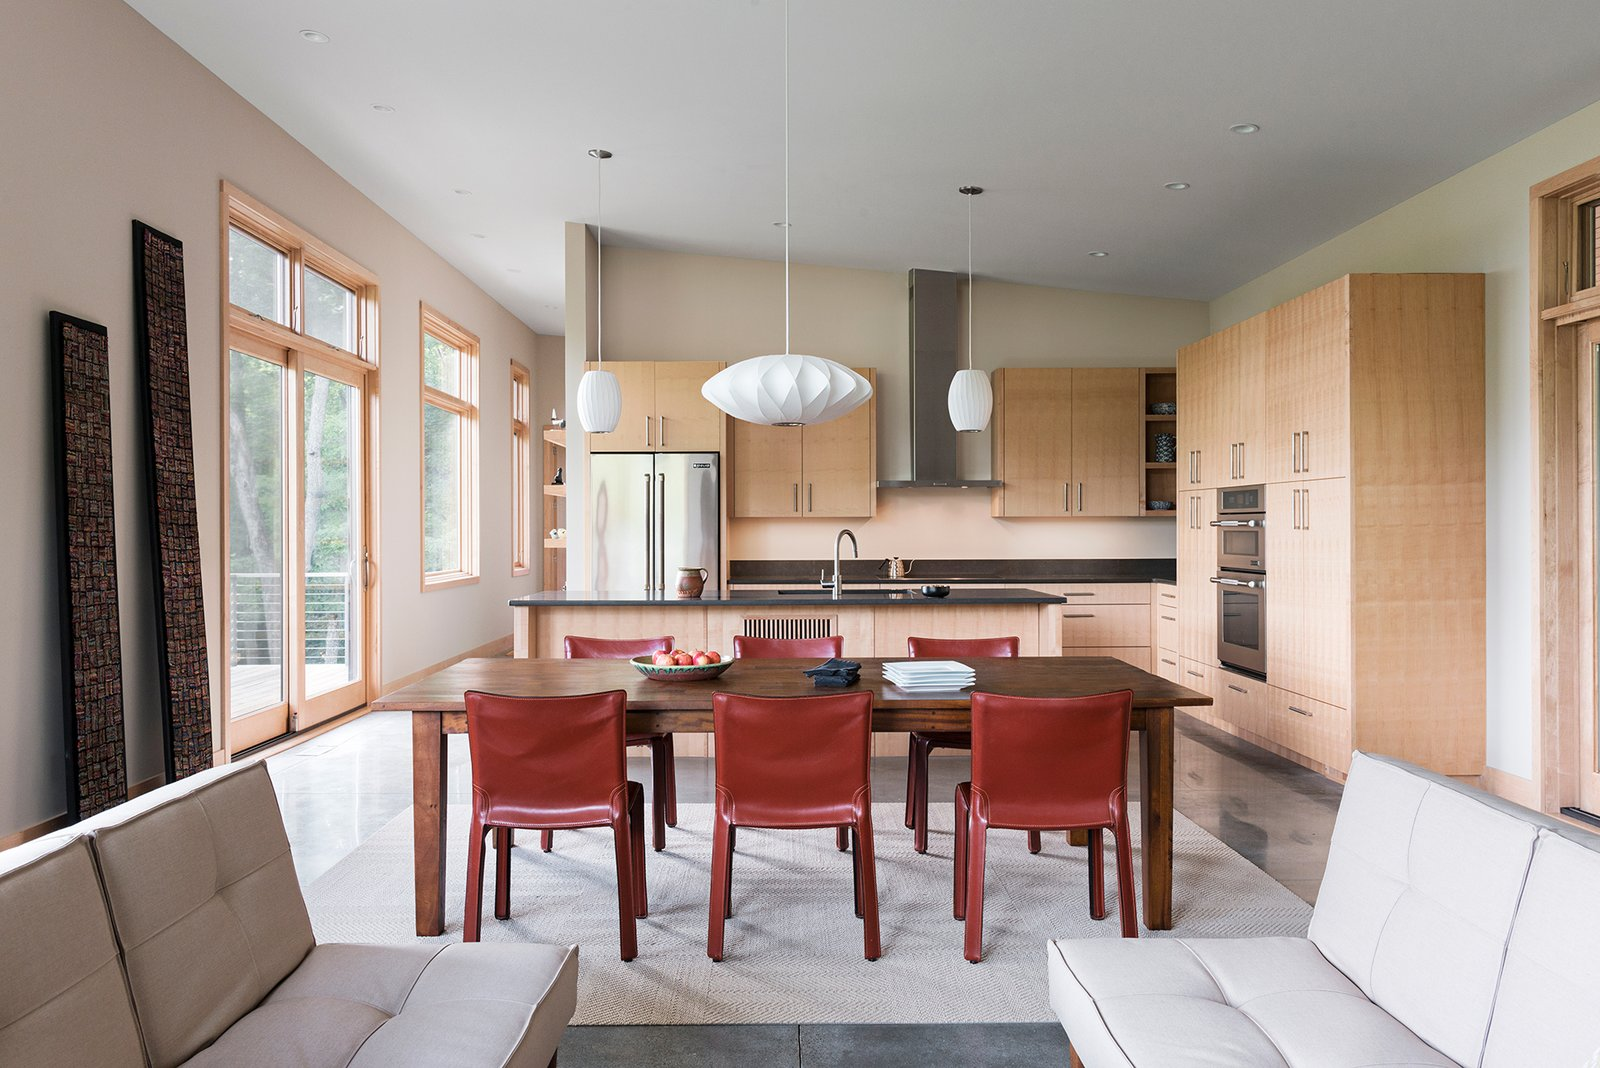 Kitchen, Concrete Floor, Wood Cabinet, Pendant Lighting, Refrigerator, Wall Oven, Range Hood, Range, and Undermount Sink The main living spaces are arranged in a light-filled open floor plan.  Craven Gap Residence by Samsel Architects